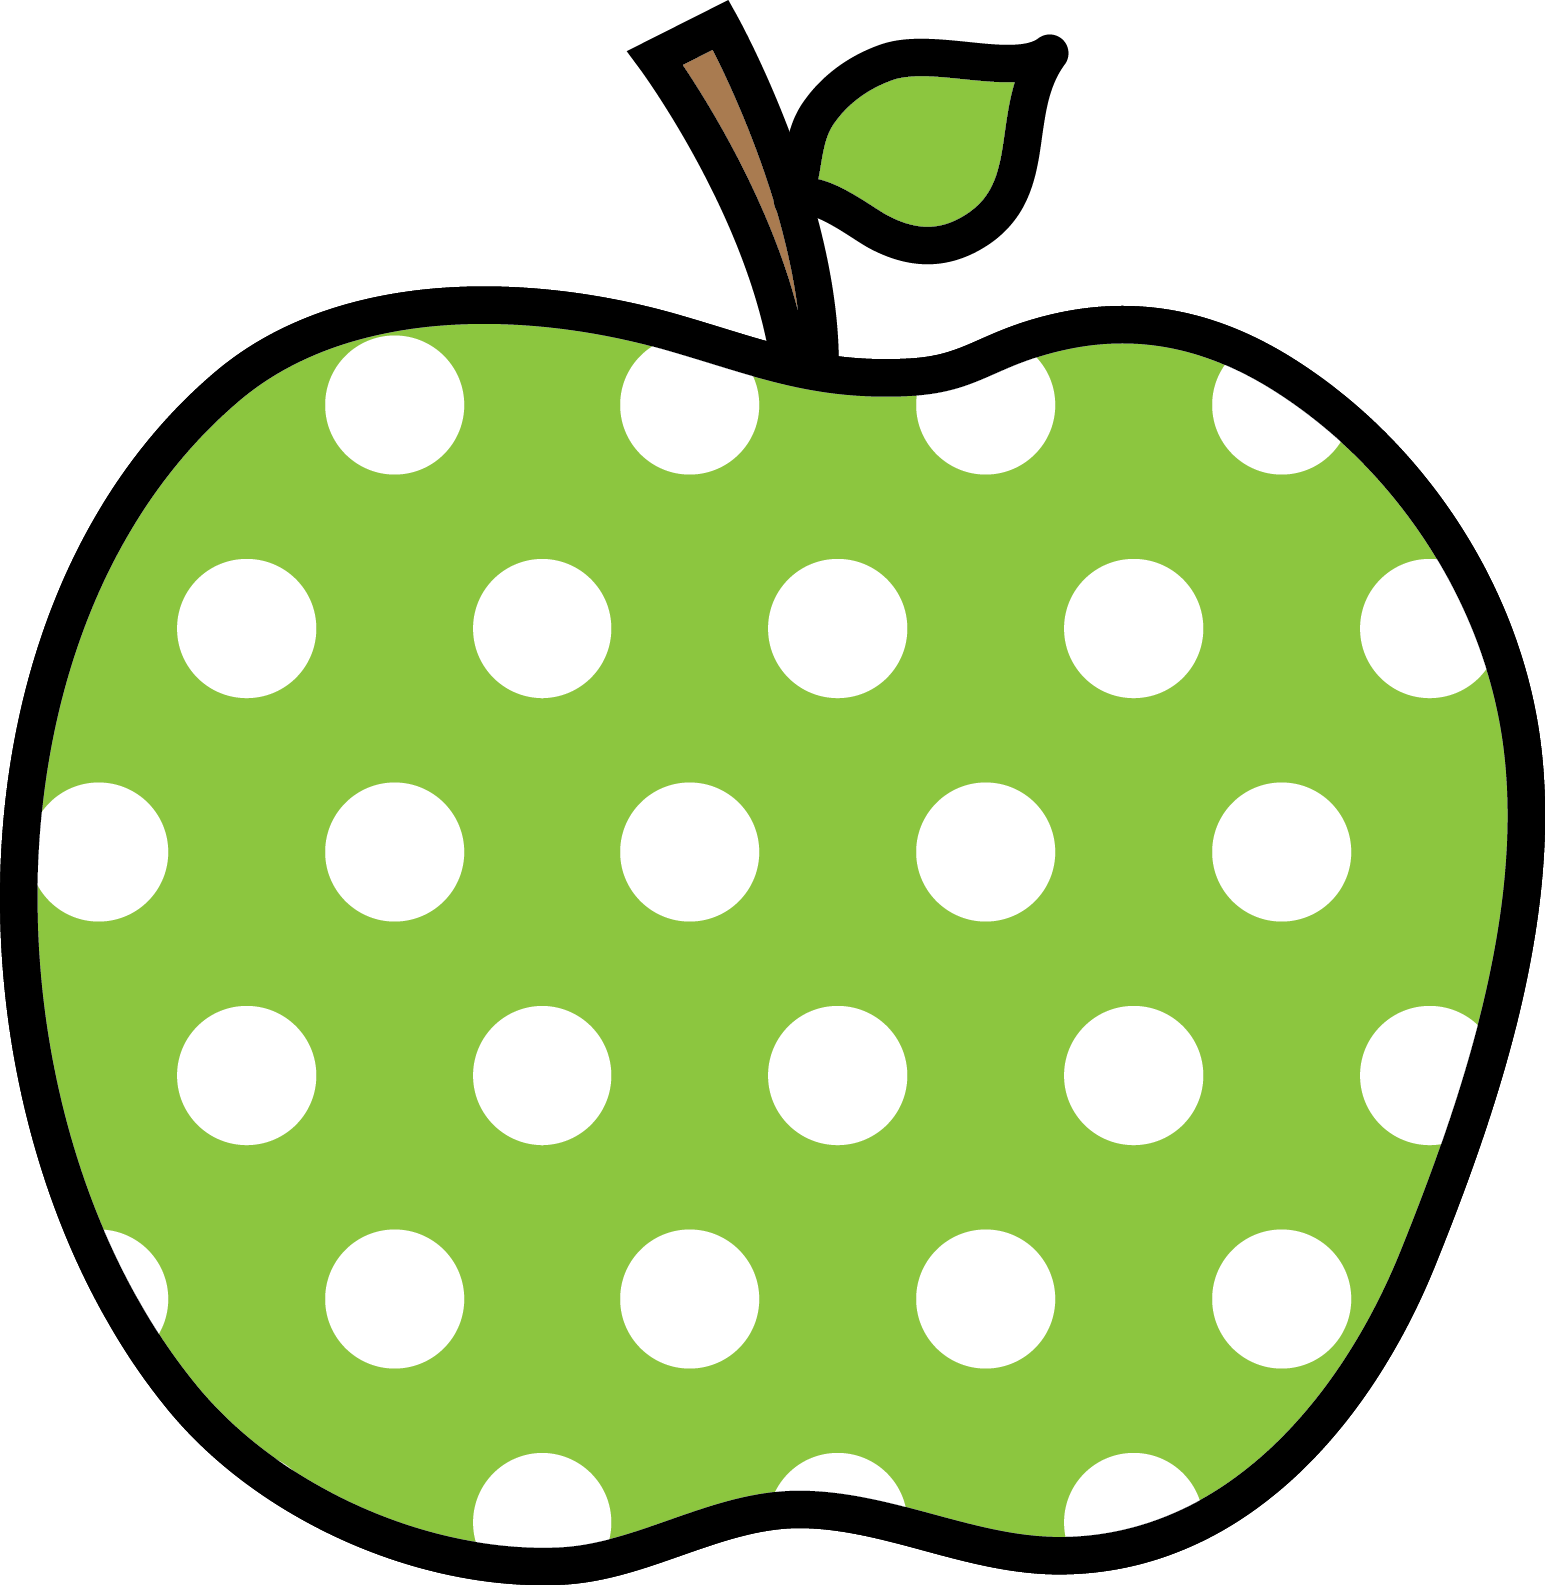 A for apple clipart svg freeuse download 28+ Collection of Polka Dot Apple Clipart | High quality, free ... svg freeuse download